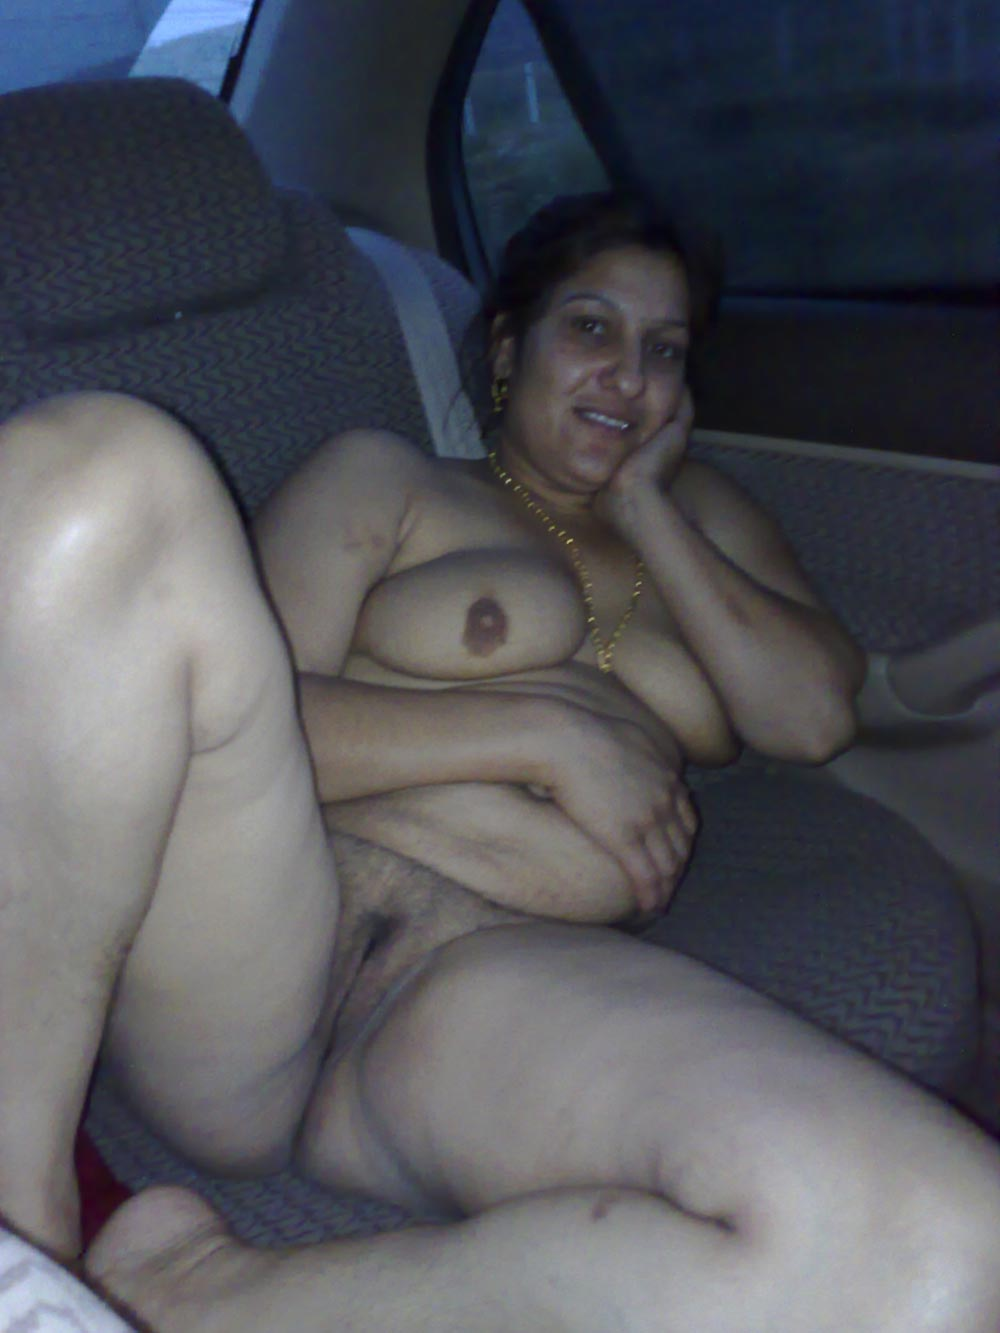 india women sex pic